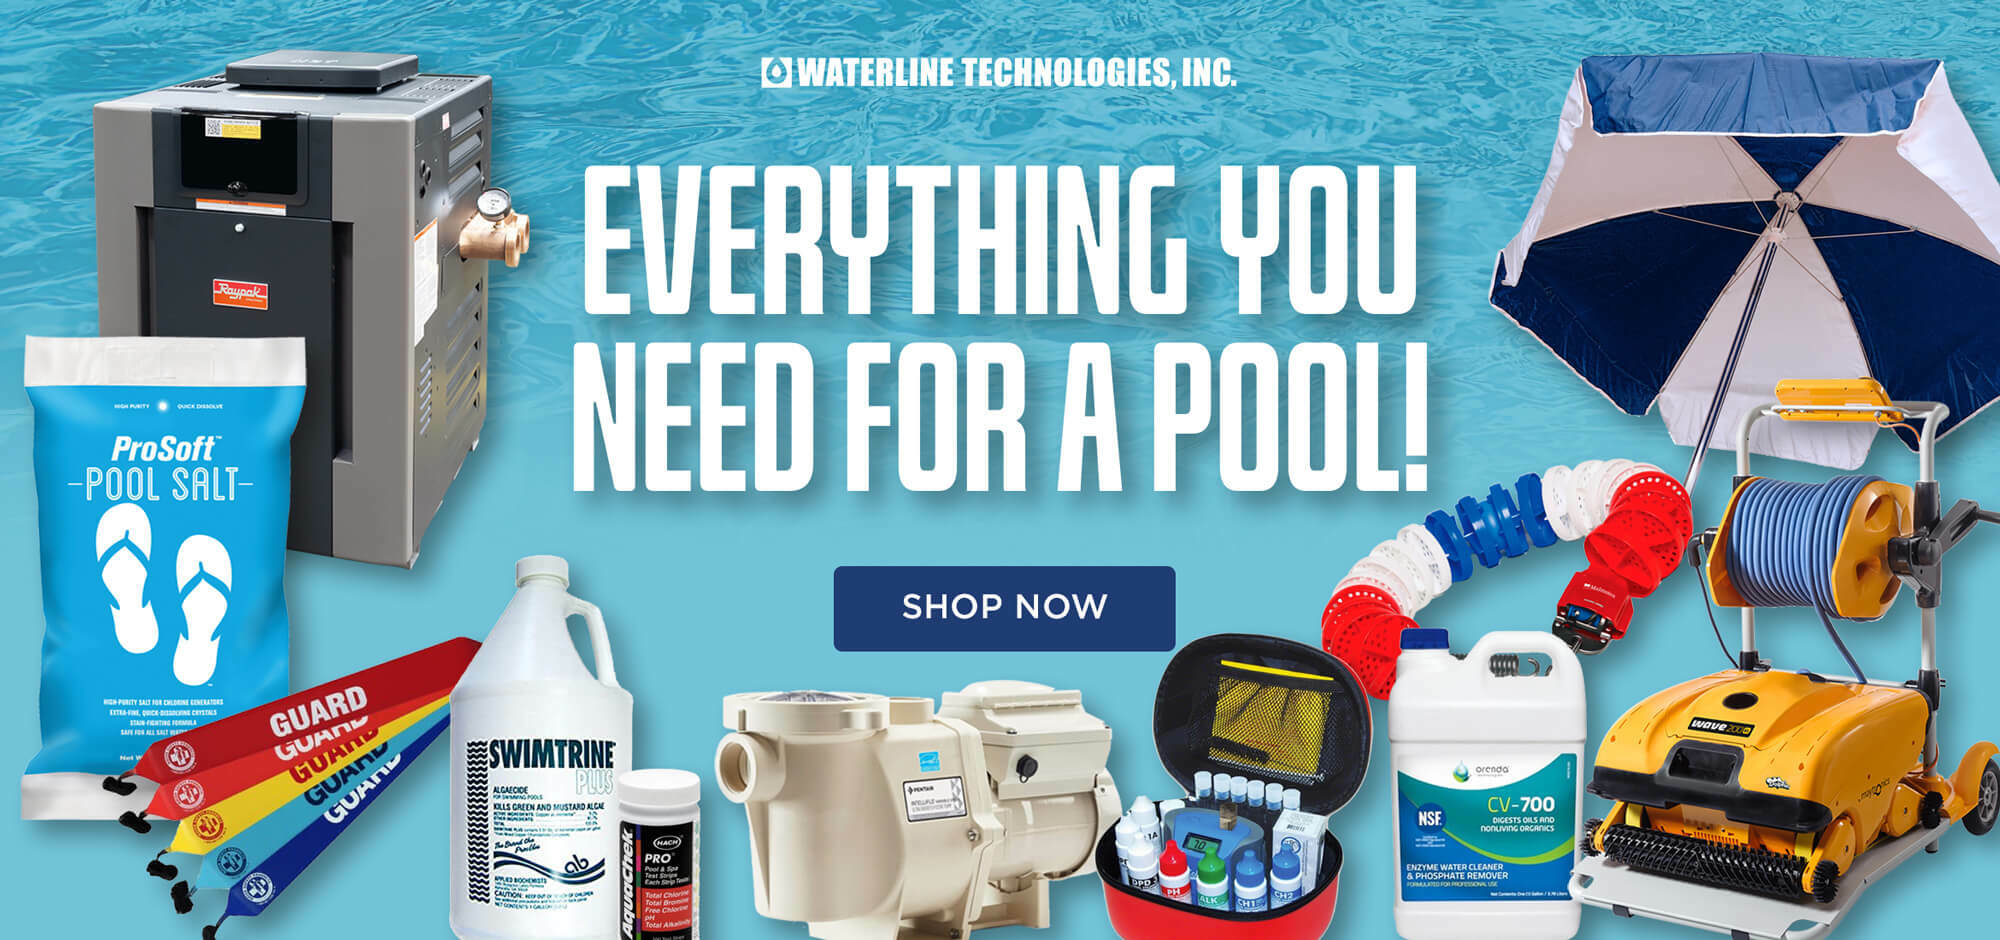 Everything you need for a pool from Waterline Technologies